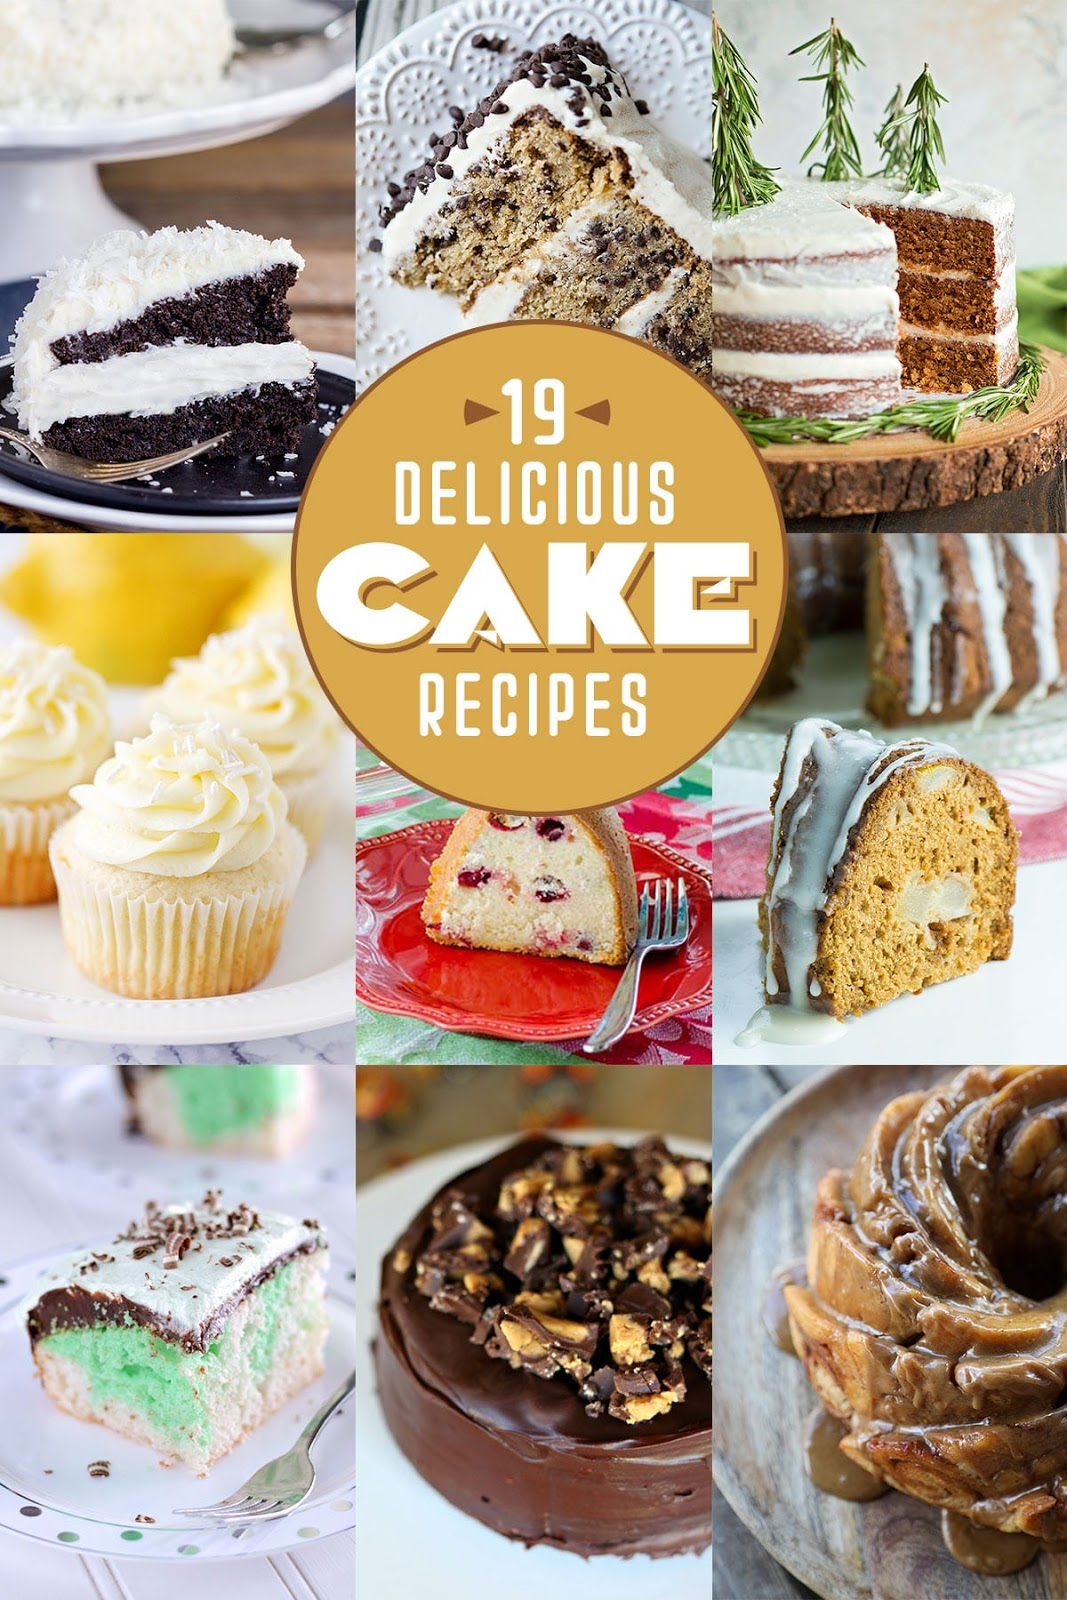 19 delicious cake recipes, perfect for celebrating National Cake Day!